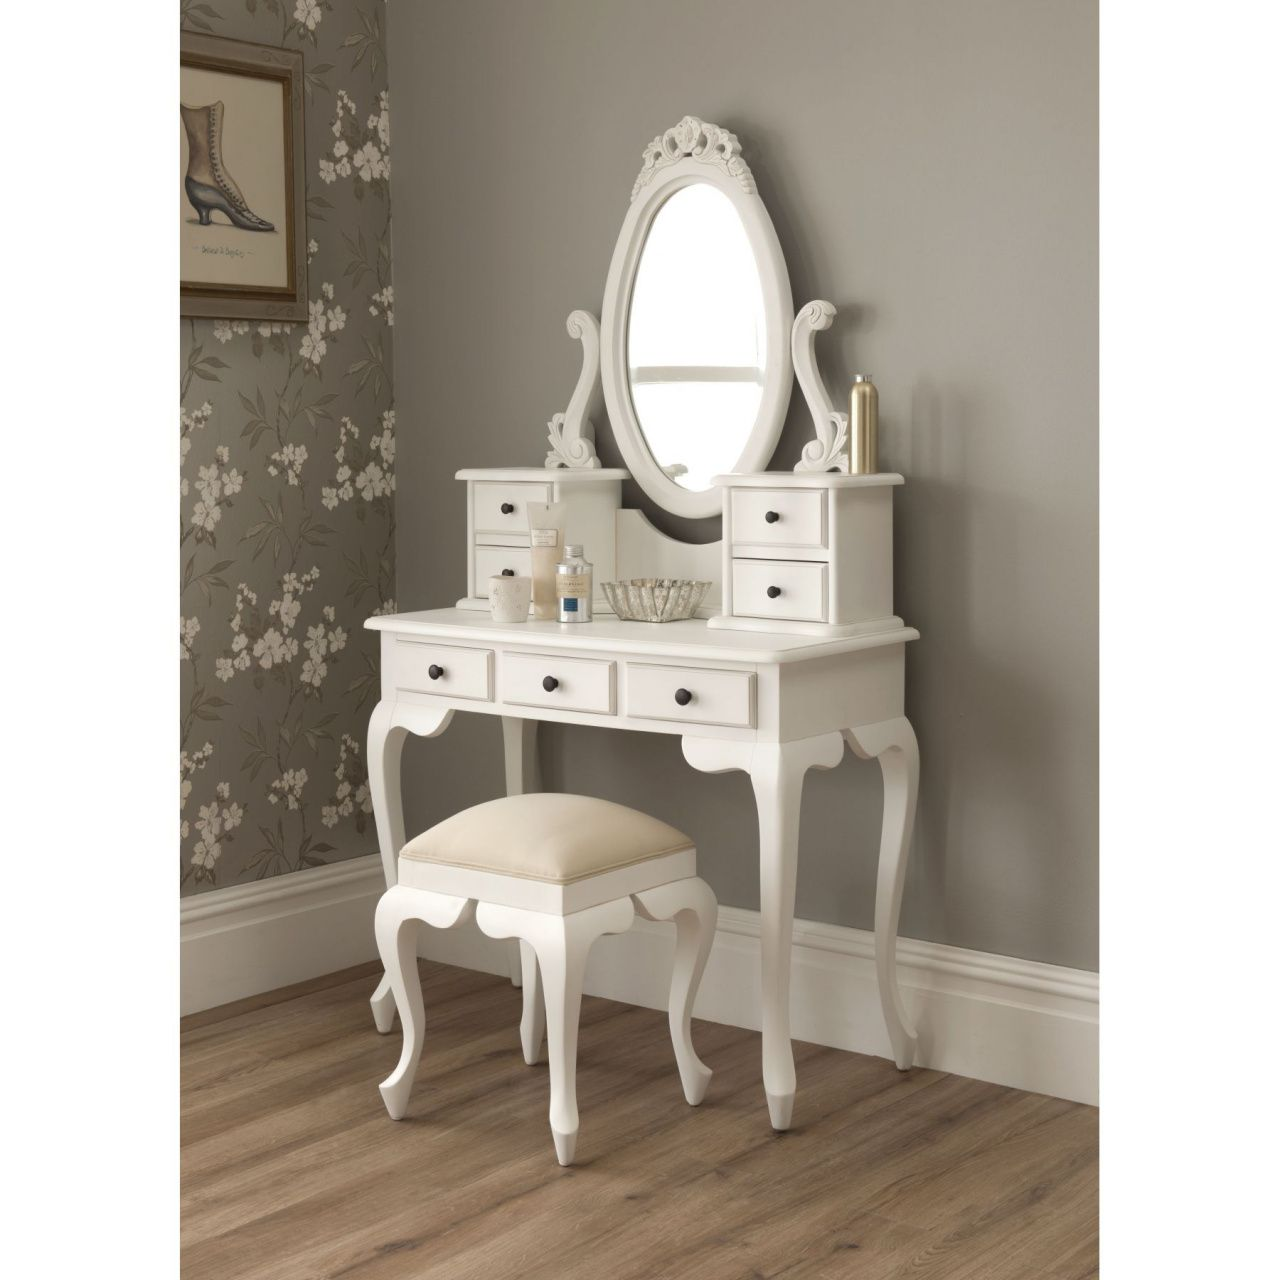 42 Bed Bath and Beyond Vanity to